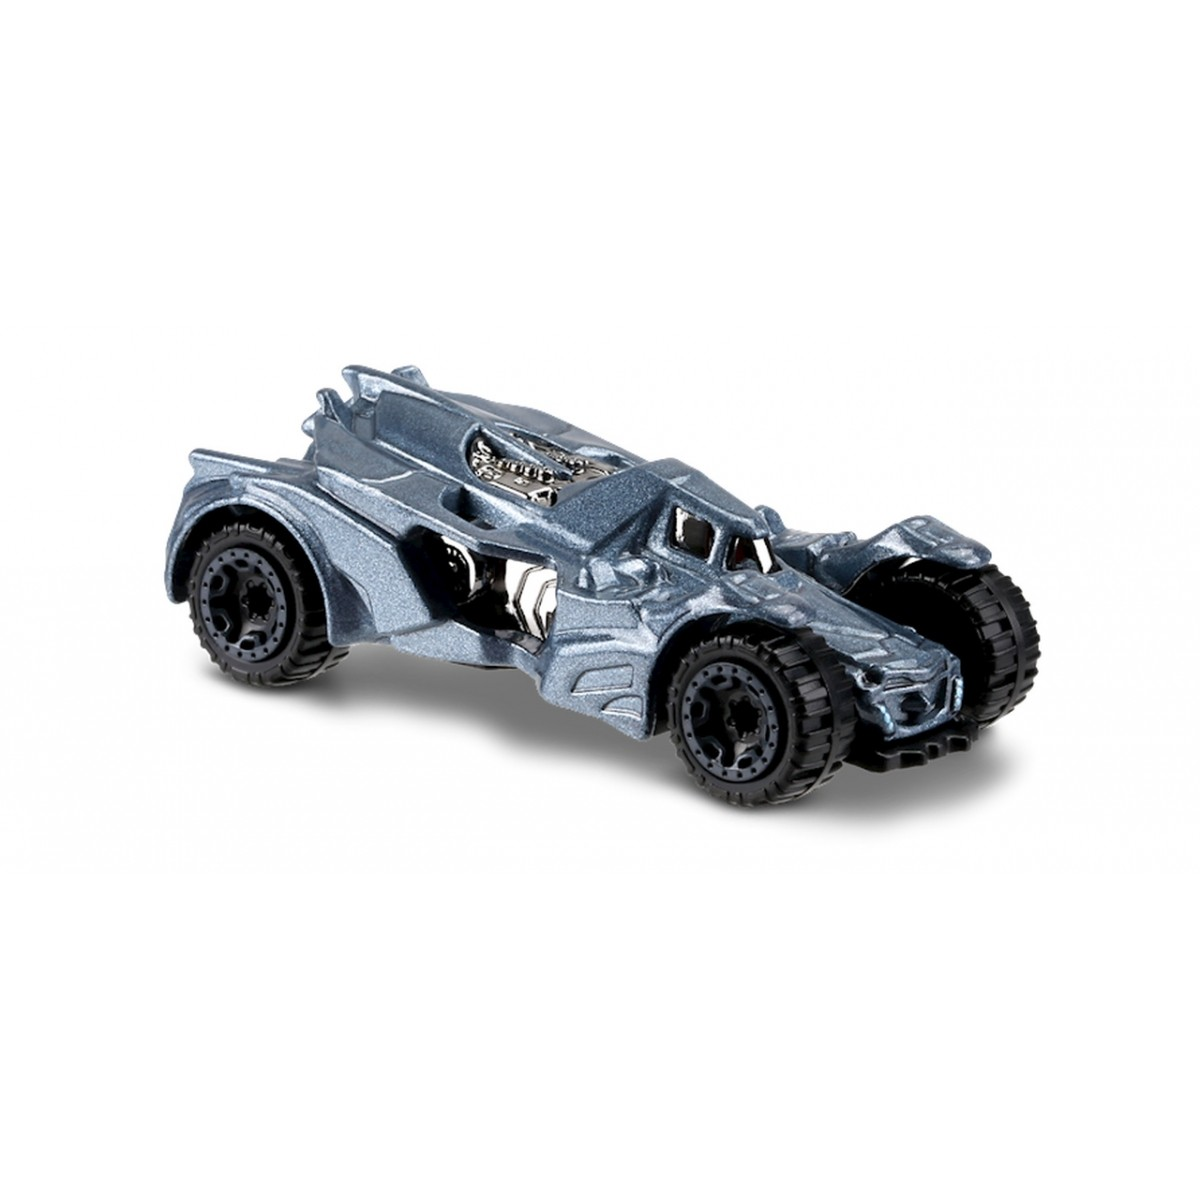 Carrinho Hot Wheels: Batman: Arkham Knight Batmobile Prateado